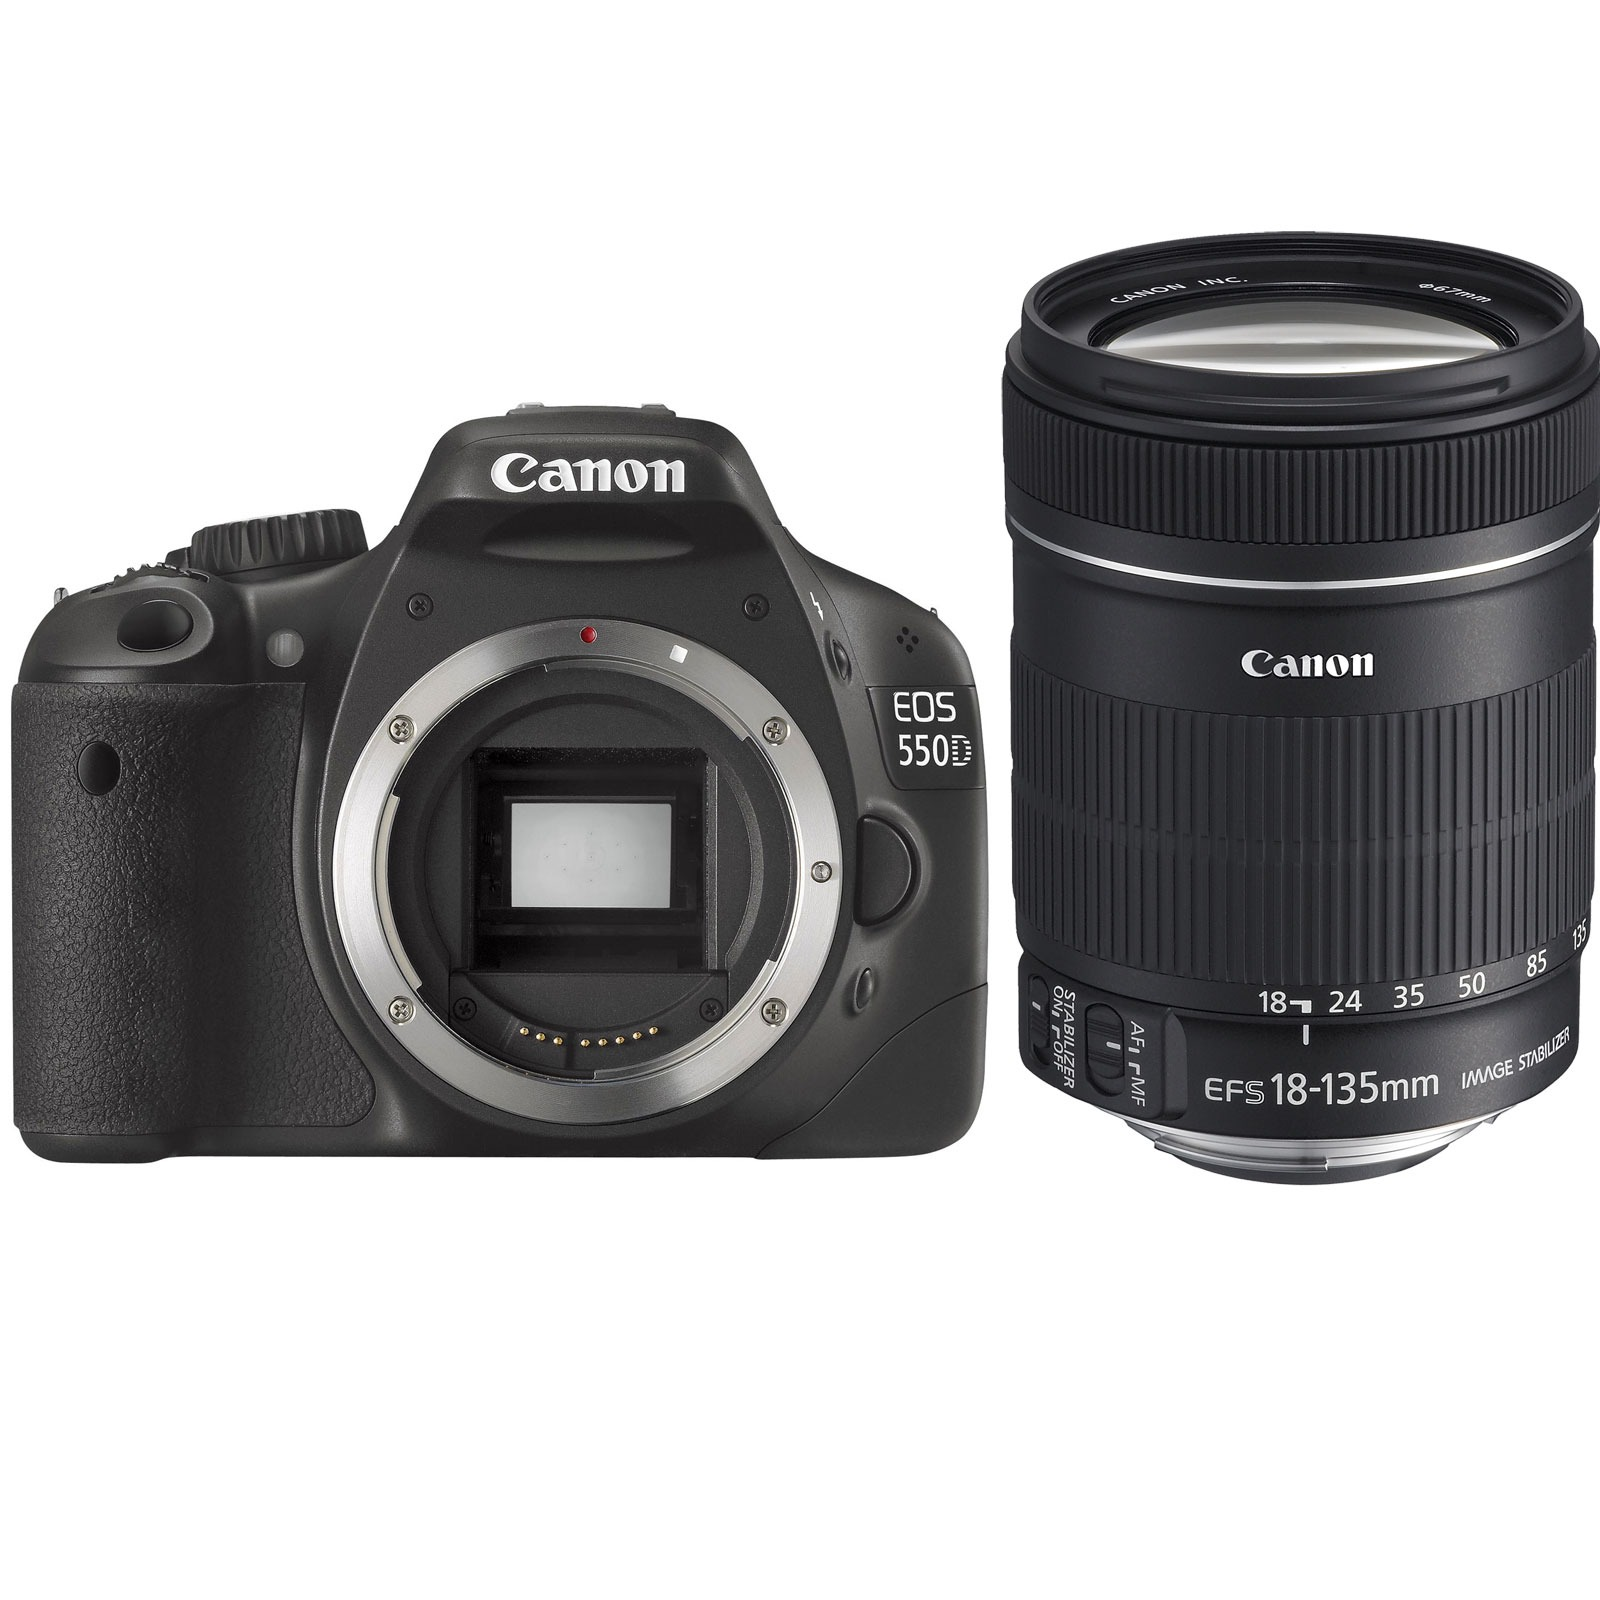 canon eos 550d objectif ef s 18 135 mm is appareil photo reflex canon sur. Black Bedroom Furniture Sets. Home Design Ideas